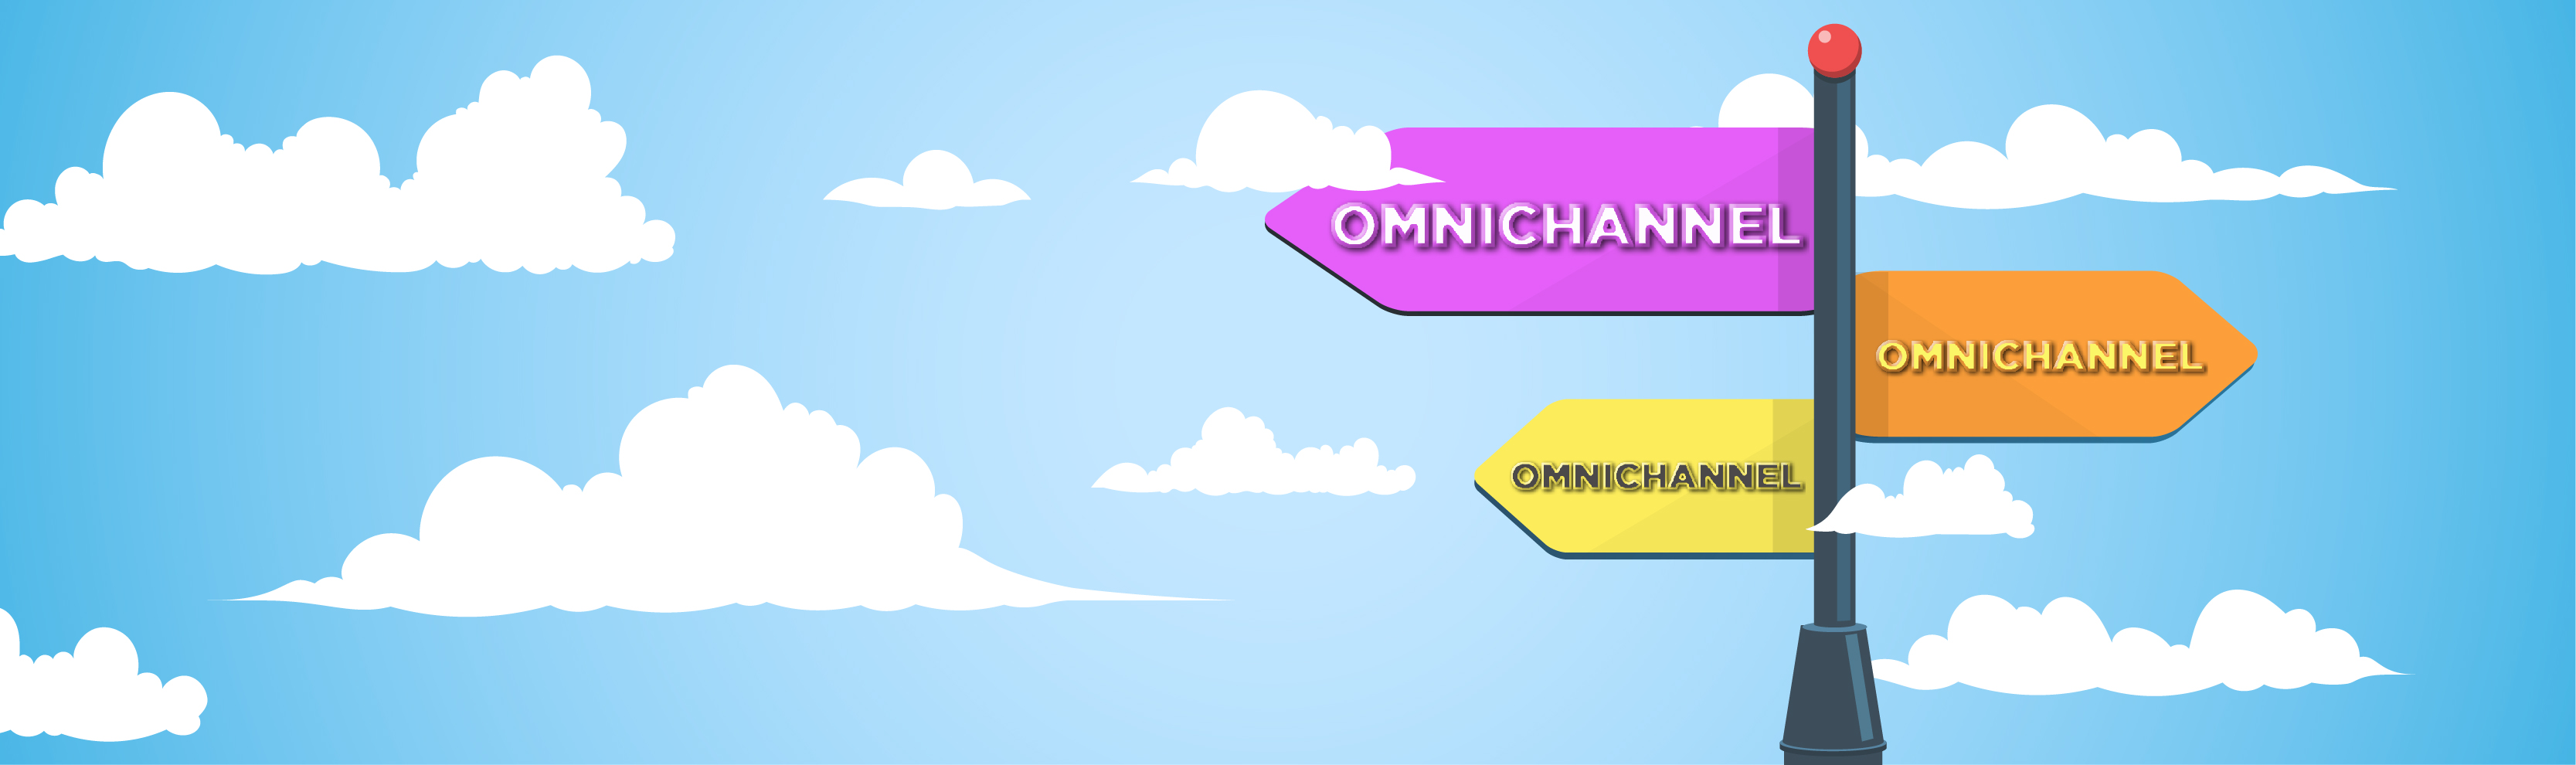 Omni-channel Explained: Its Relation to Marketing & Beyond